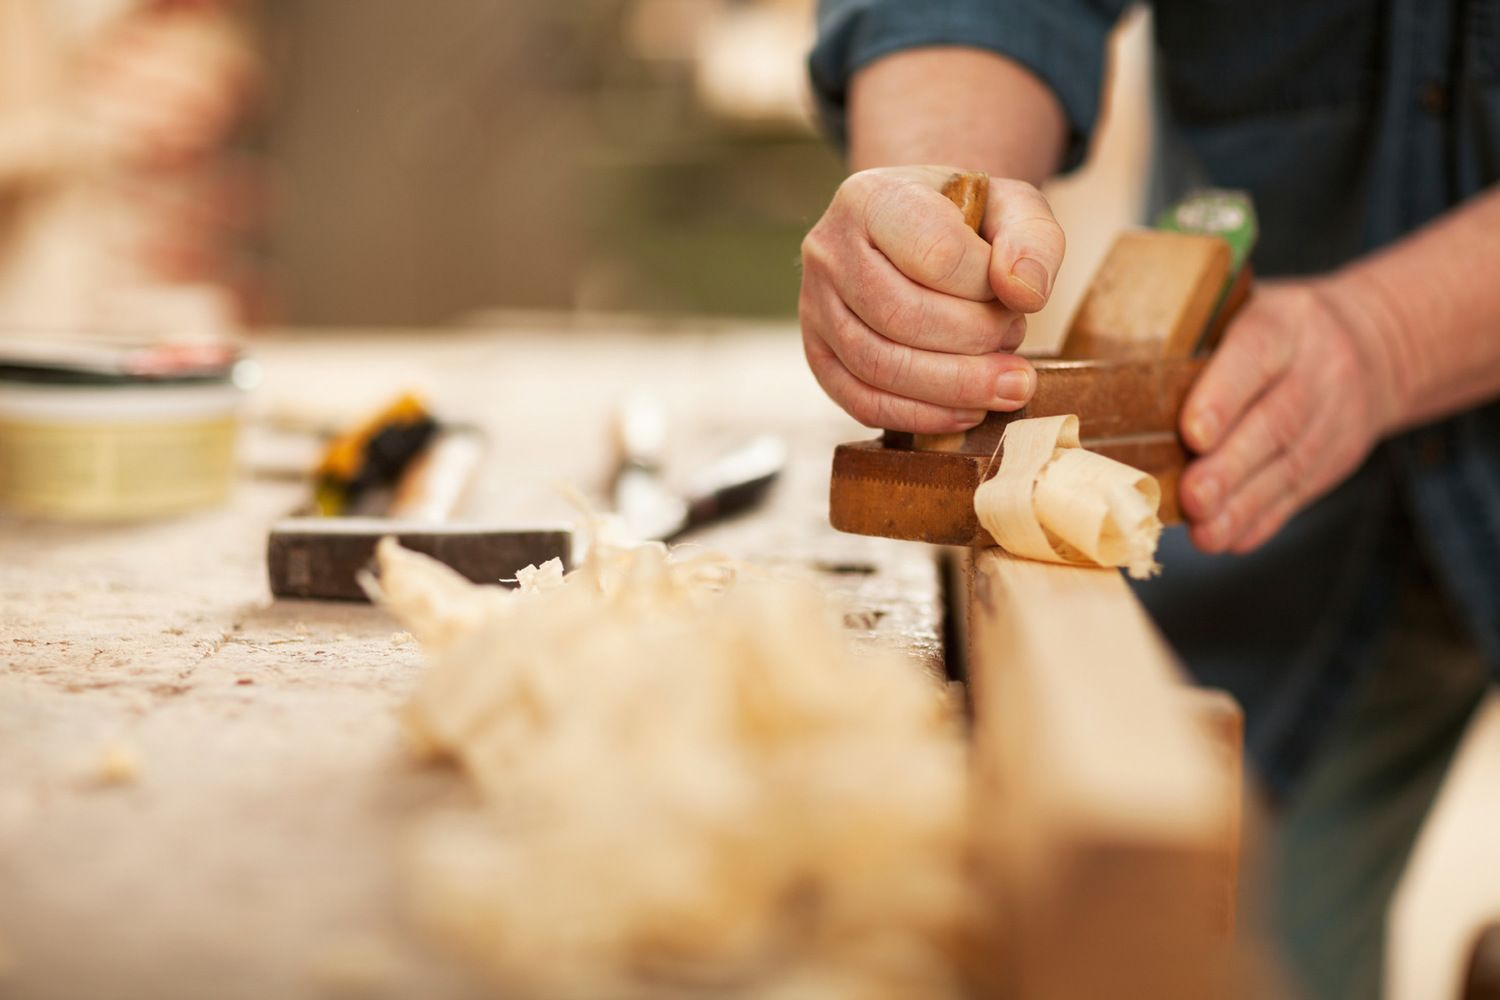 The best Carpentry Service in London Endego LTD. Free